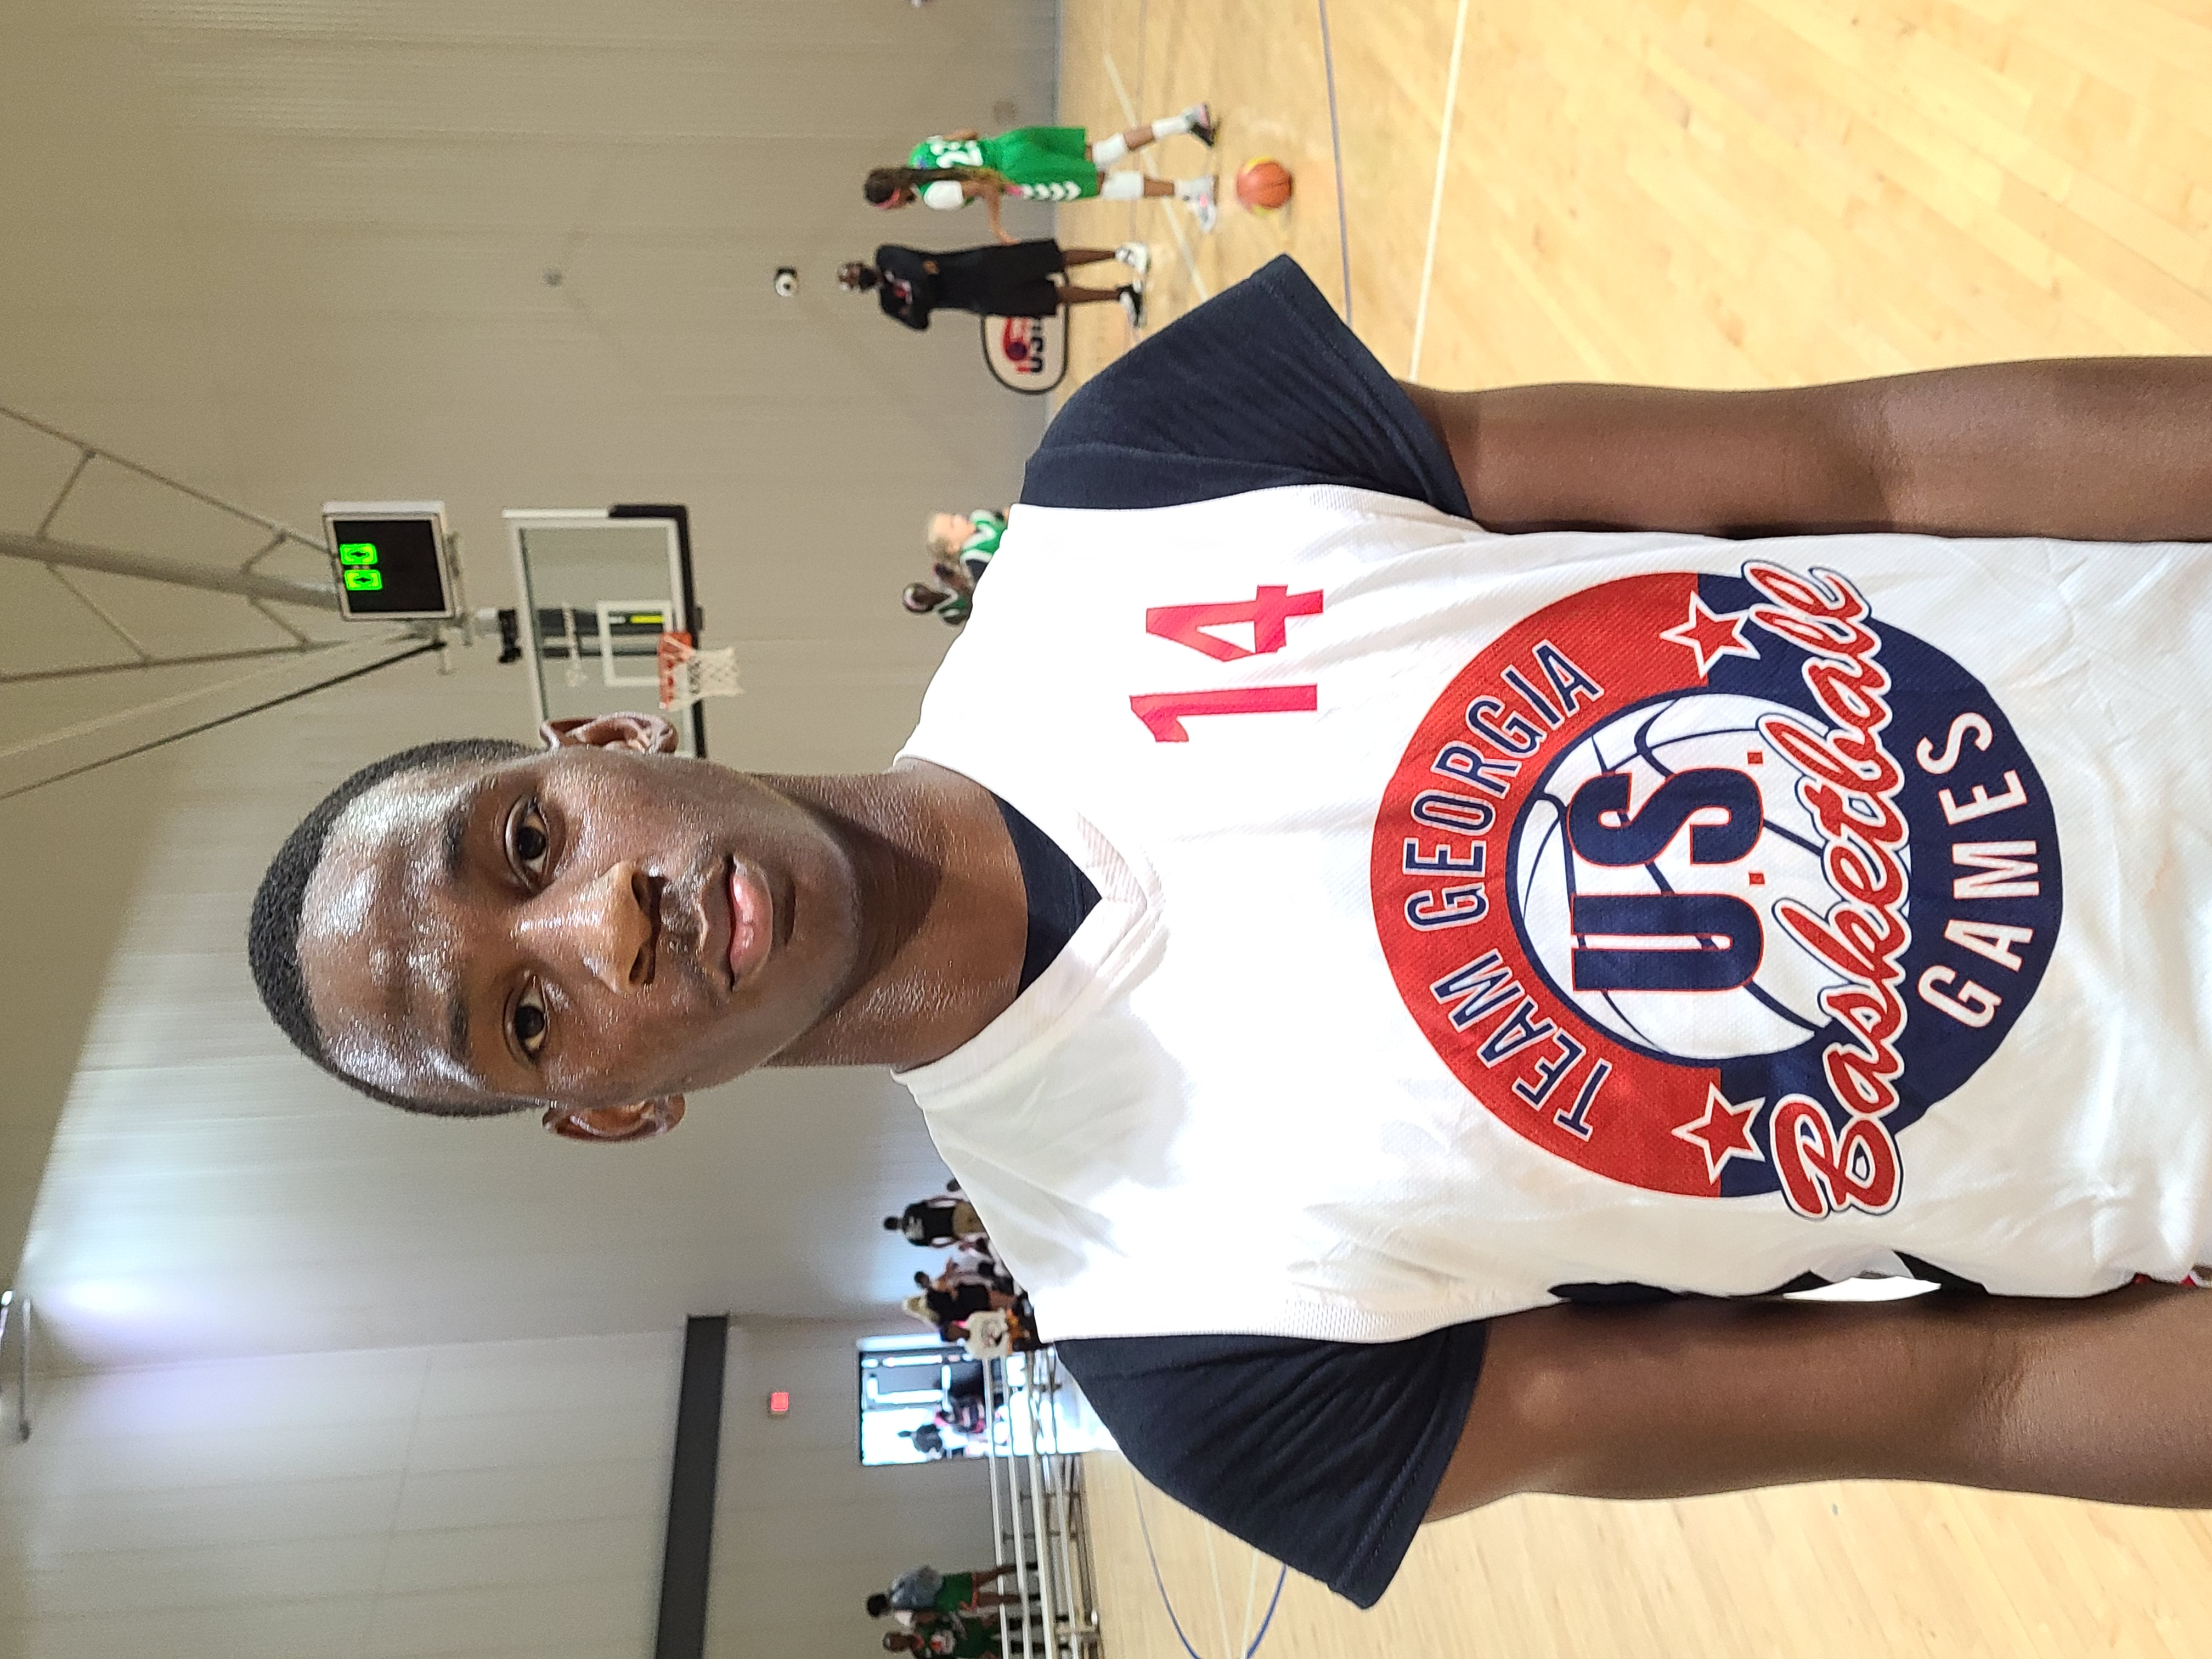 US Basketball Games: GA Standouts Pt 1 - August 11, 2021